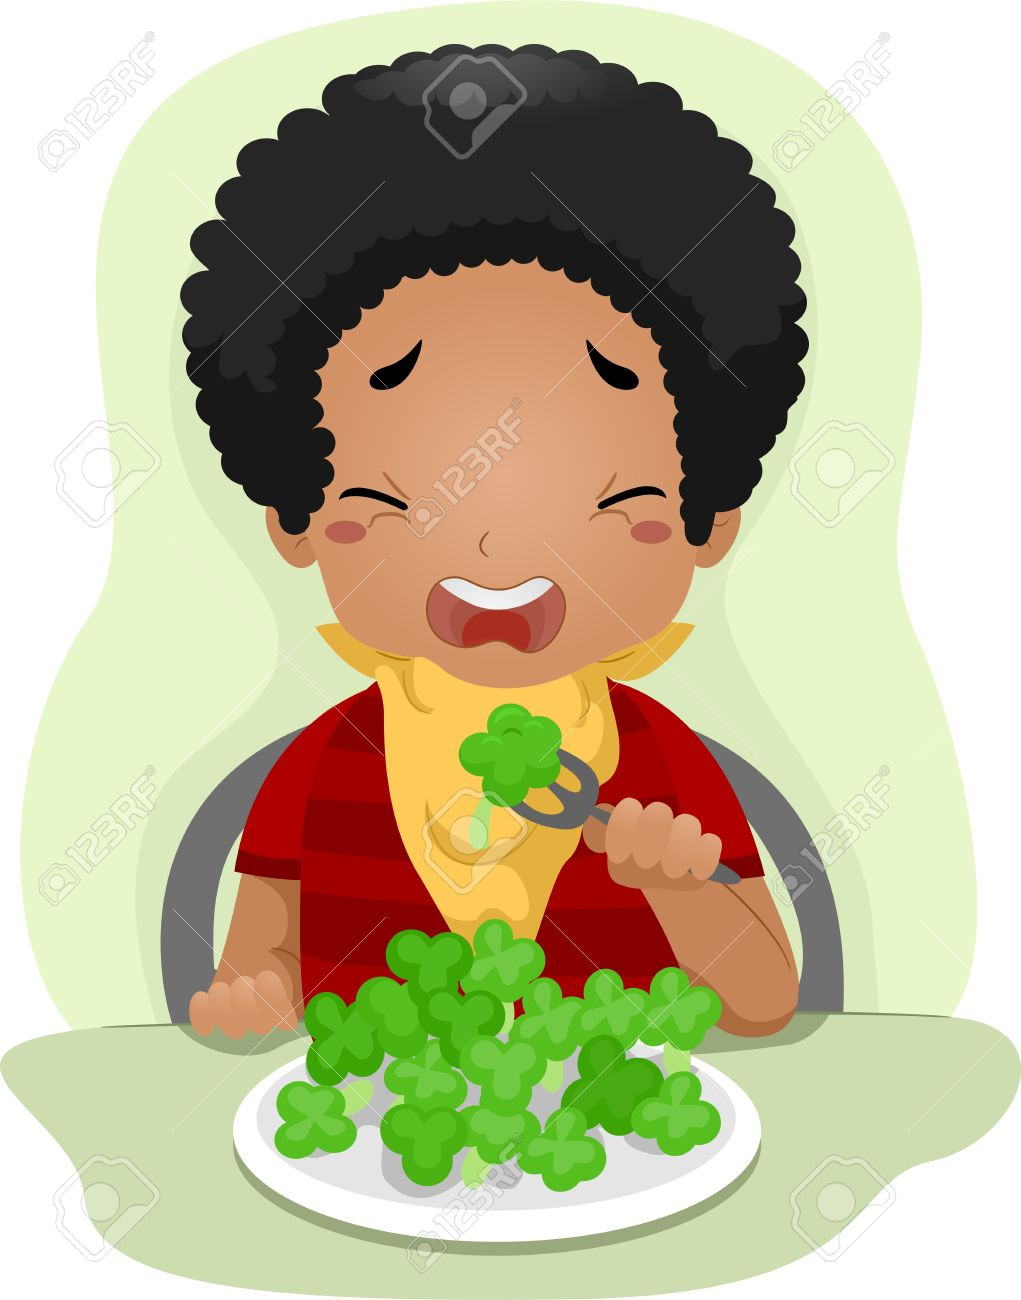 Illustration Of A Kid Eating Vegetables Against His Will Stock.